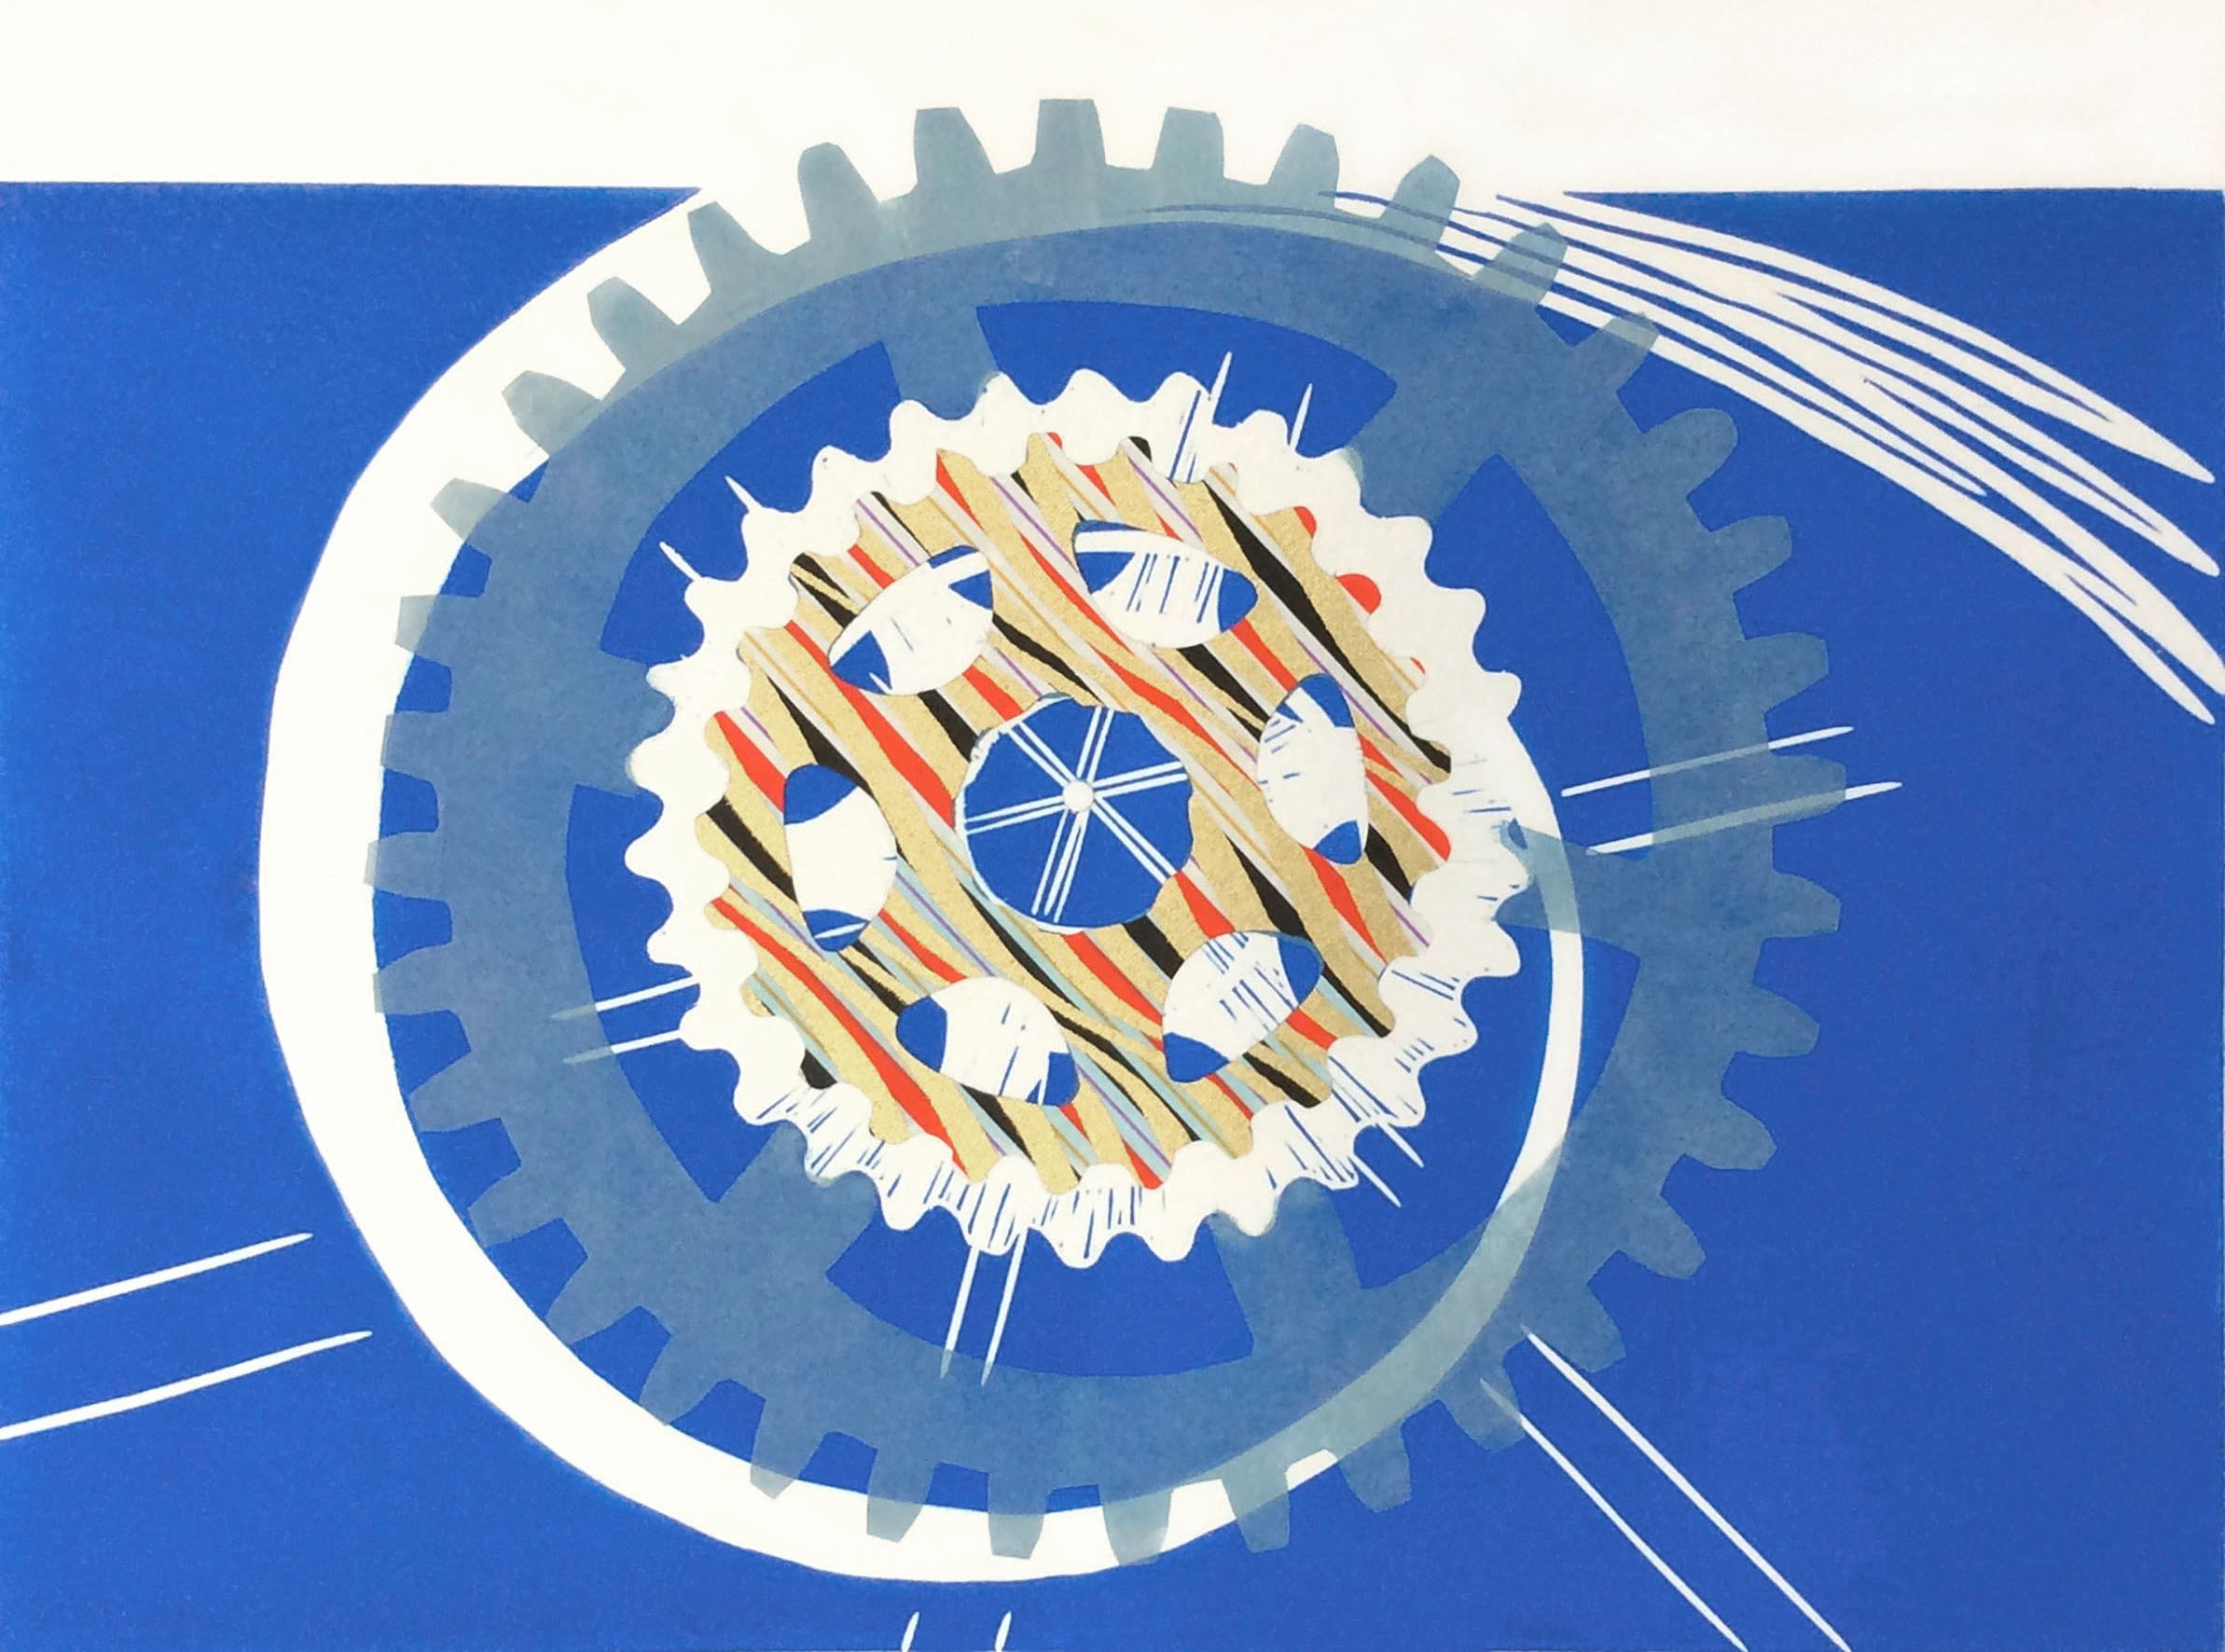 Wheel of time, linocut and chine collé